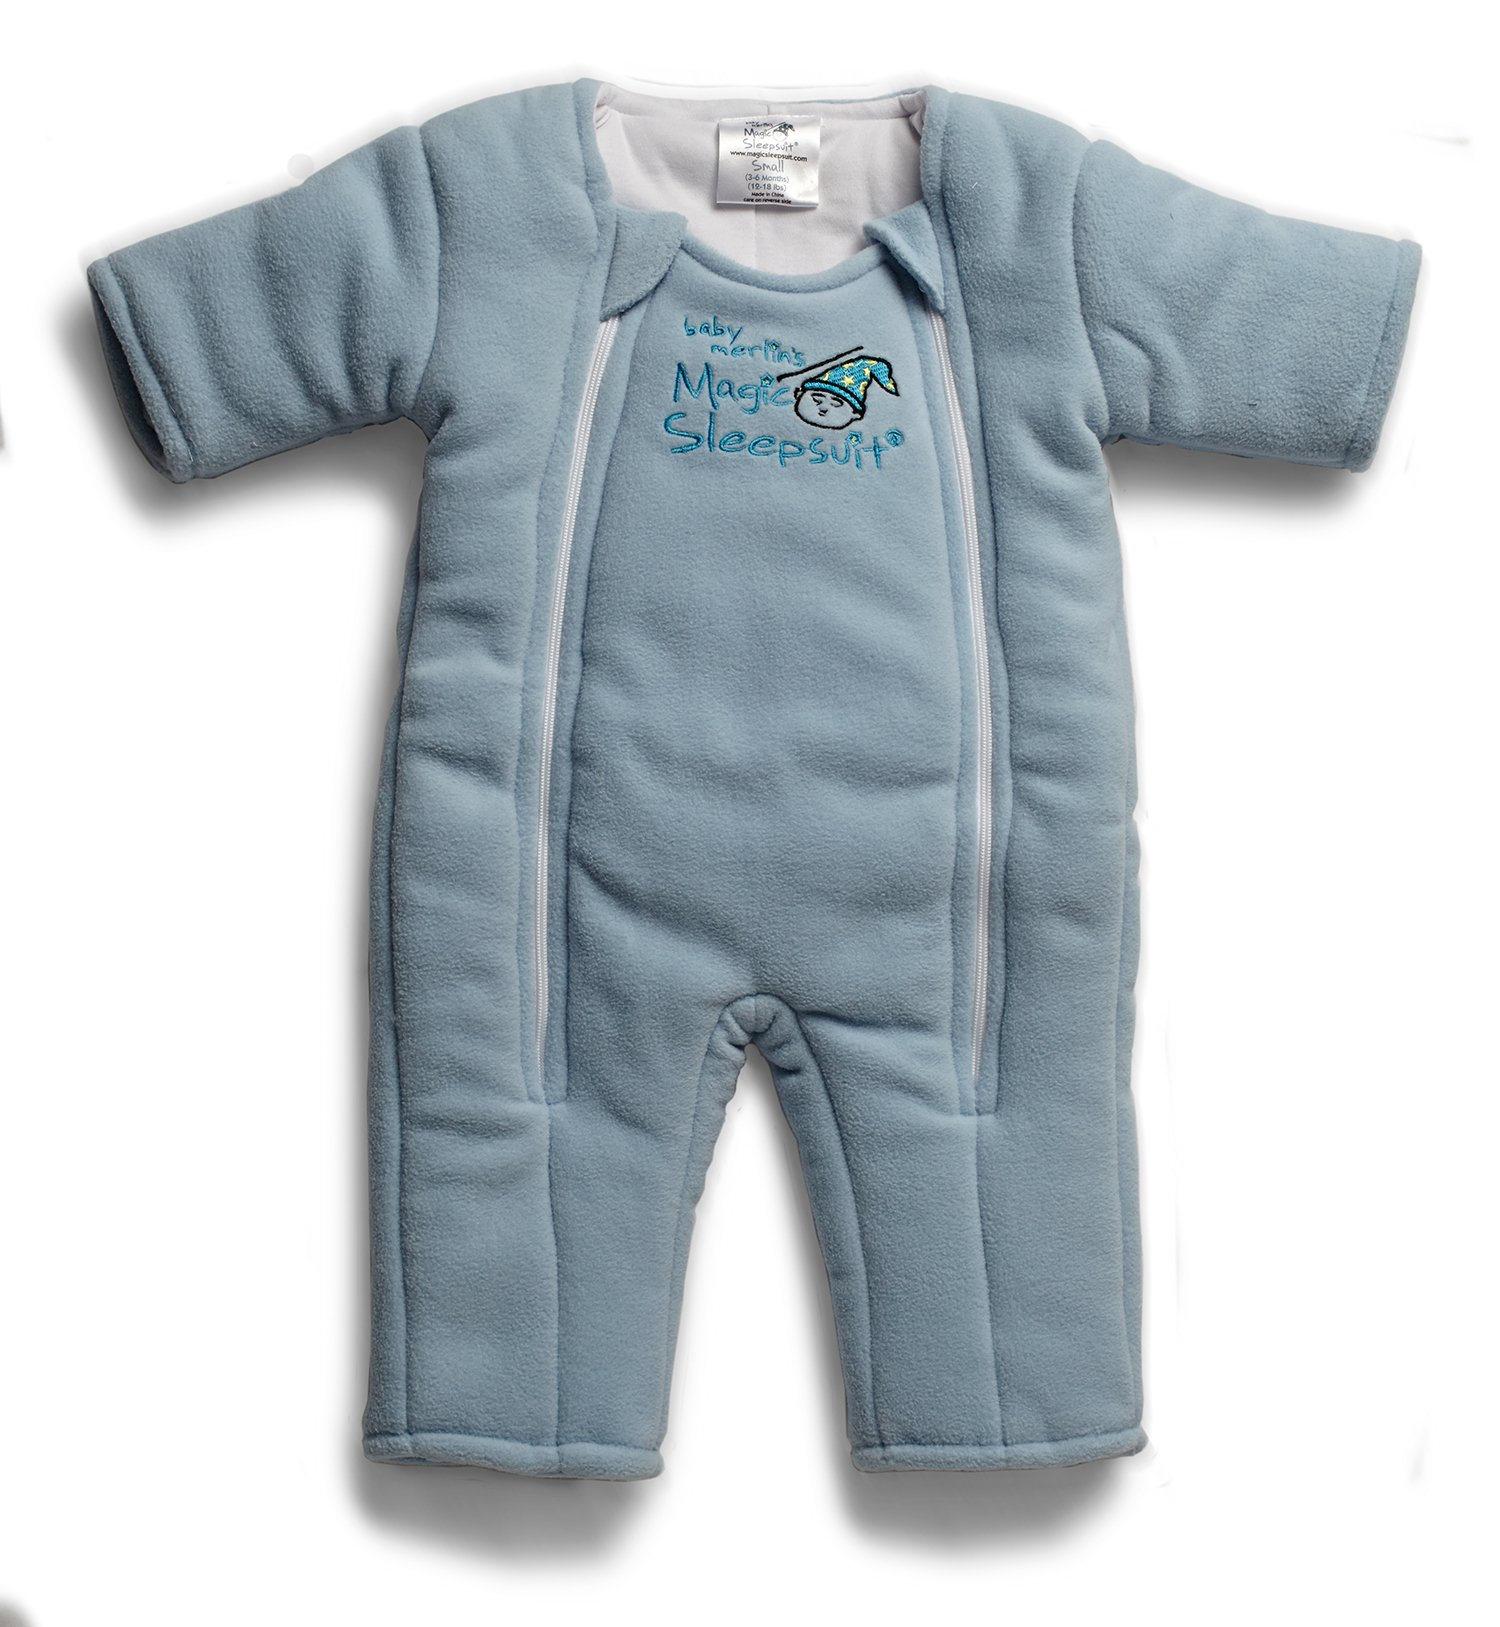 Baby Merlin's Magic Sleepsuit - Swaddle Transition Product - Microfleece - Blue - 3-6 Months by Baby Merlin's Magic Sleepsuit